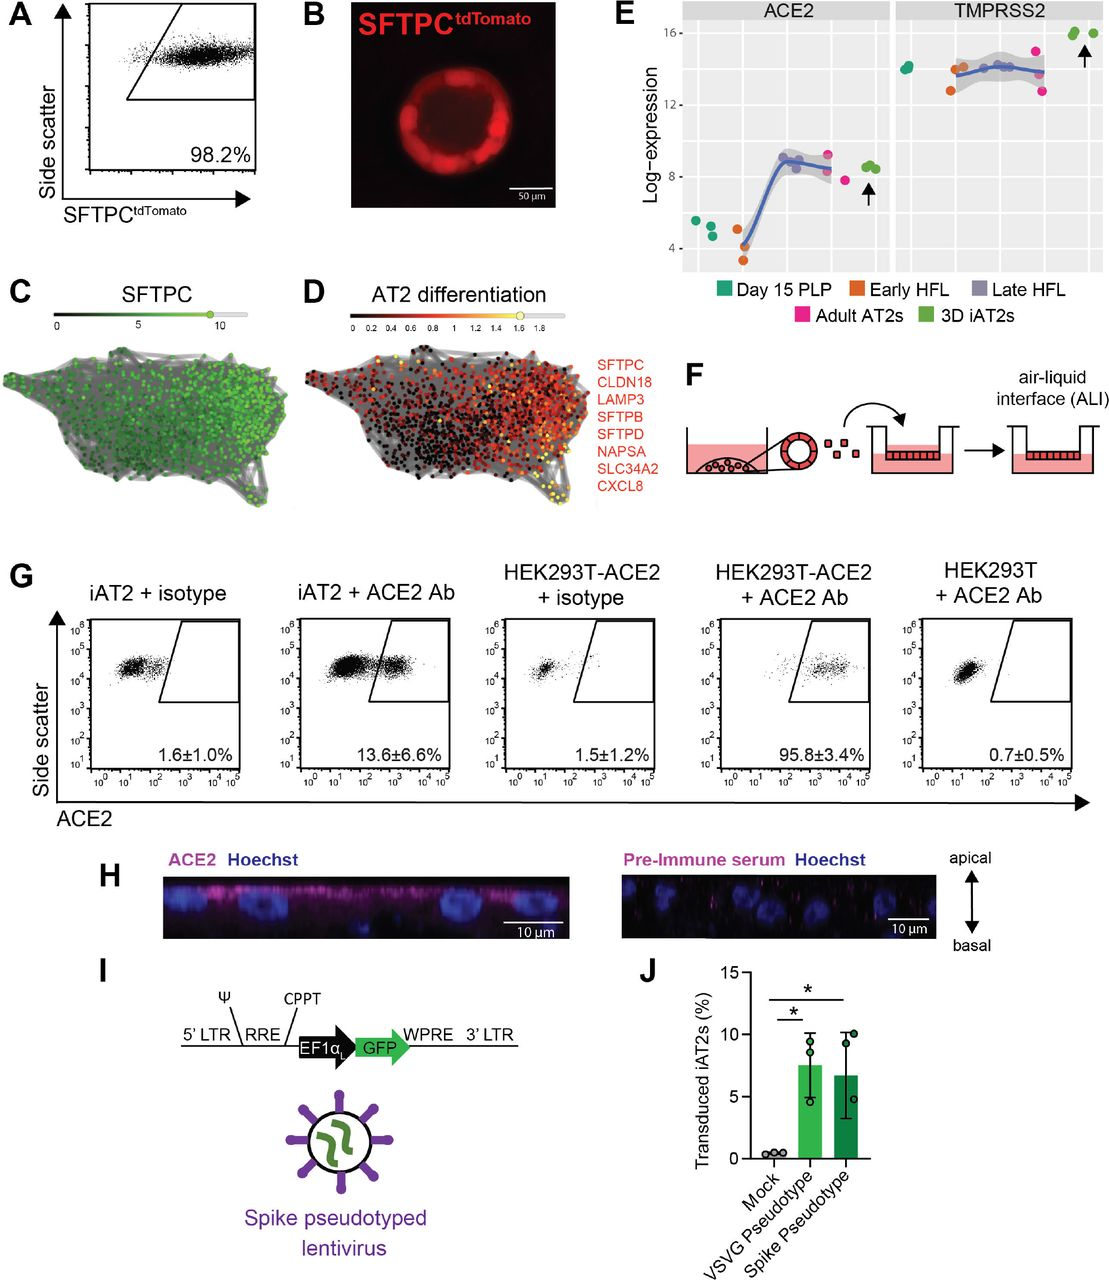 iPSC-derived alveolar epithelial type 2 cells (iAT2s) express functional SARS-CoV-2 entry factors ACE2 and TMPRSS2. (A-B) iAT2s, carrying a tdTomato reporter targeted to the endogenous SFTPC locus by gene editing (SPC2 line), can be serially passaged while maintaining > 90% SFTPC tdTomato+ expression in 3D sphere cultures (Day 160 of differentiation, passage 8 shown; single cell RNA sequencing profile provided in Figure S1 ). (C, D) Single cell RNA sequencing data of iAT2s (SPC2 line at Day 114 of differentiation) visualized in SPRING plots (Weinreb et al., 2018) based on reanalysis of a dataset previously published in ( Hurley et al., 2020 ) showing expression of (C) SFTPC as well as (D) an 8-gene benchmark of AT2 cell differentiation ( SFTPC, CLDN18, LAMP3, SFTPB, SFTPD, NAPSA, SLC34A2, CXCL8 as characterized in ( Hurley et al., 2020 )). (E) iAT2s (RUES2 line) express ACE2 and TMPRSS2 transcripts at comparable levels to purified primary adult human lung AT2s (day 15 PLP=primordial lung progenitors derived from pluripotent stem cells at day 15 of differentiation, Early HFL=primary early human fetal lung alveolar epithelium at 16-17.5 weeks gestation; late HFL=alveolar epithelium at 20-21 weeks gestation, and adult AT2s=adult alveolar epithelial type 2 cells from 3 different individuals freshly sorted using the antibody HTII-280.adult AT2s; primary sample adult and fetal procurement described in detail in ( 9 )). (F-H) iAT2s (SPC2 line) cultured at air-liquid interface (ALI) (F) express ACE2 protein, as observed by flow cytometry, n=9 (G; additional scRNA-seq profiling in Figure S1 ), which is apically localized, as observed by immunofluorescence staining (scale bar = 10 μm) (H). (I-J) iAT2s infected with a GFP-expressing lentivirus pseudotyped with either VSVG or SARS-CoV-2 Spike envelopes, n=3. *p